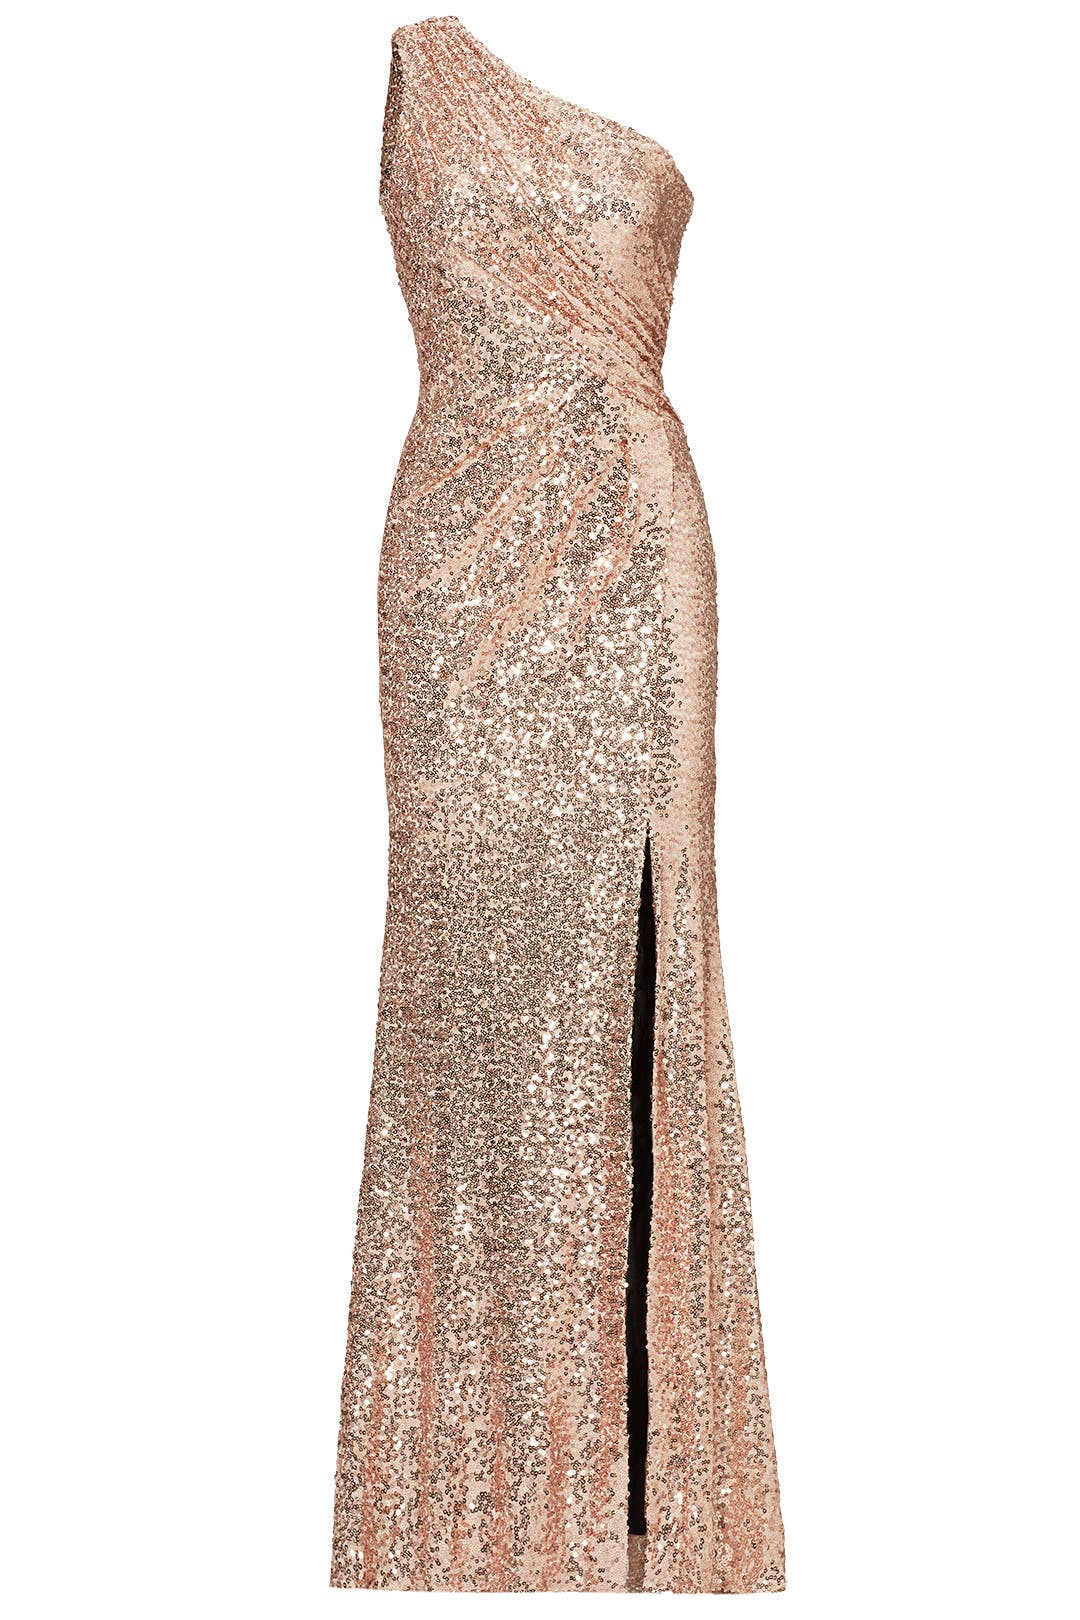 Blush Constellation Gown by Badgley Mischka for $100 | Rent the Runway